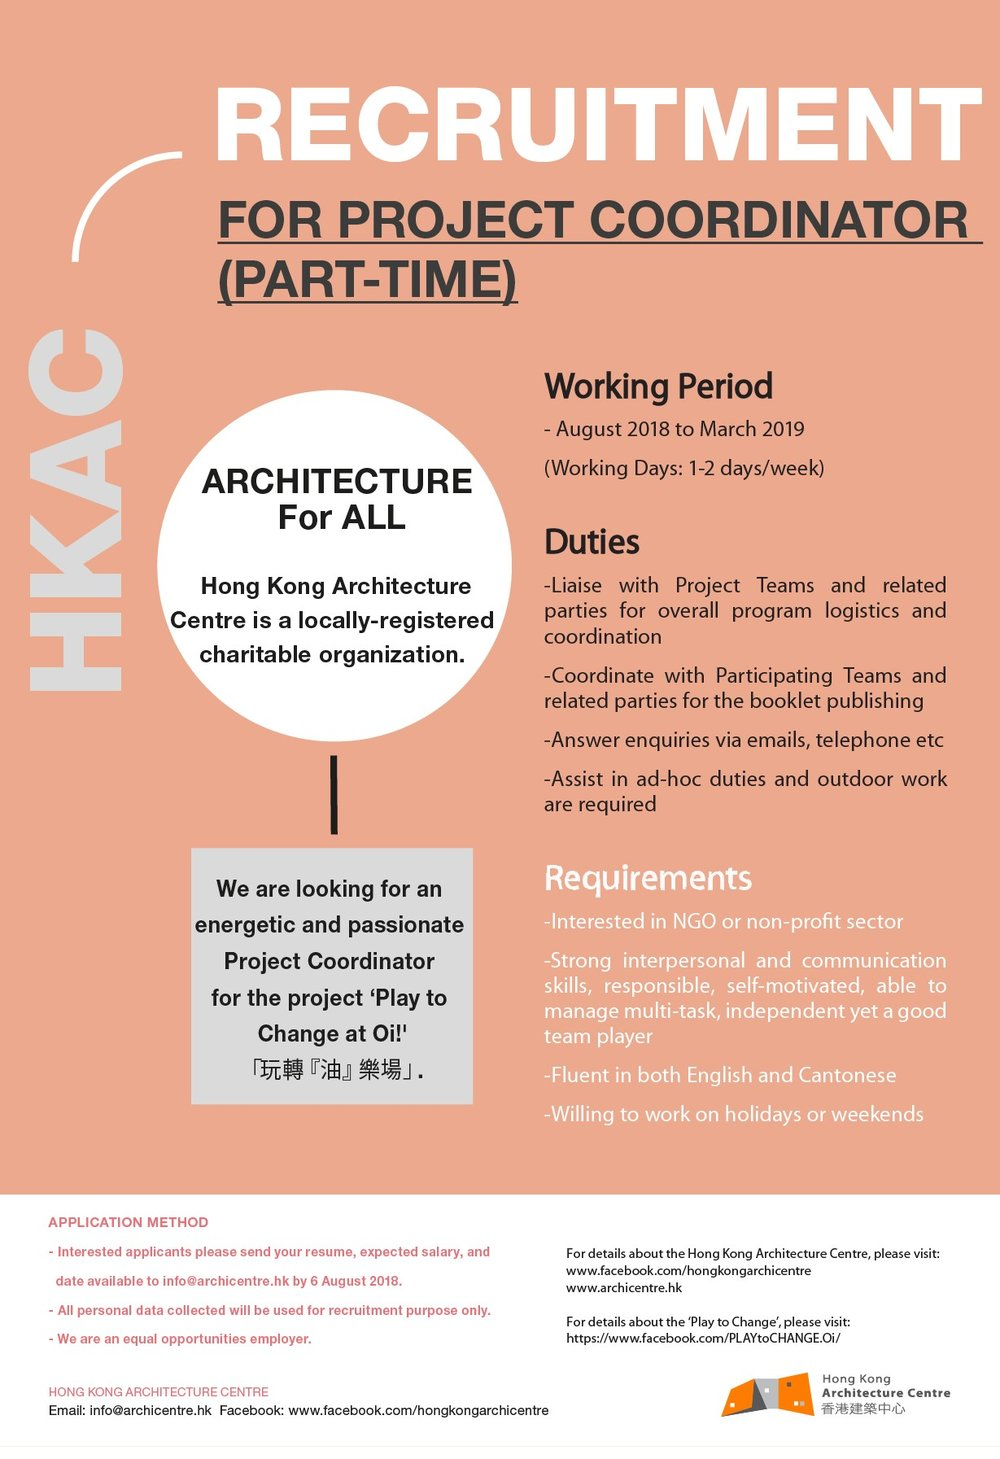 - We are looking for an energetic and passionateProject Coordinator for the project 'Play toChange at Oi!'「玩轉『油』樂場」.Interested applicants please send your resume, expected salary, and date available to info@archicentre.hk by 6 August 2018.